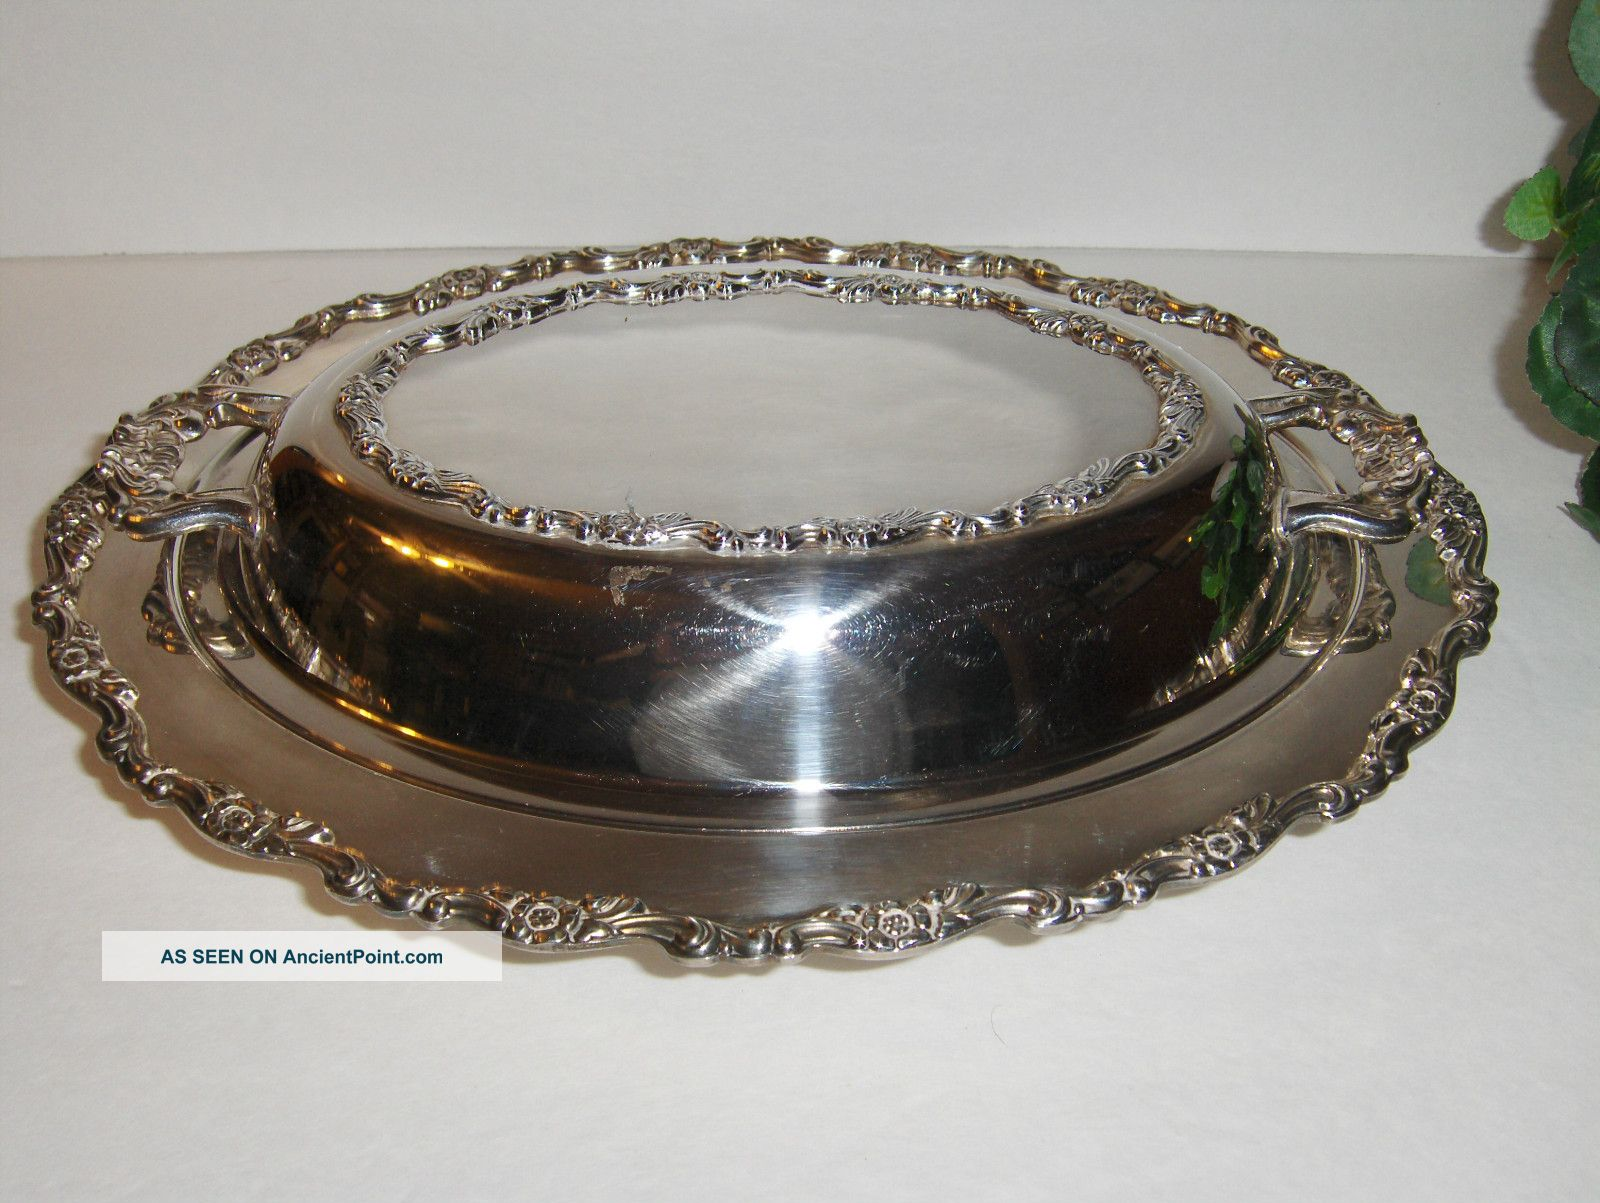 Vintage Wm A Rogers Ornate Silver Plate Covered Serving Dish 12